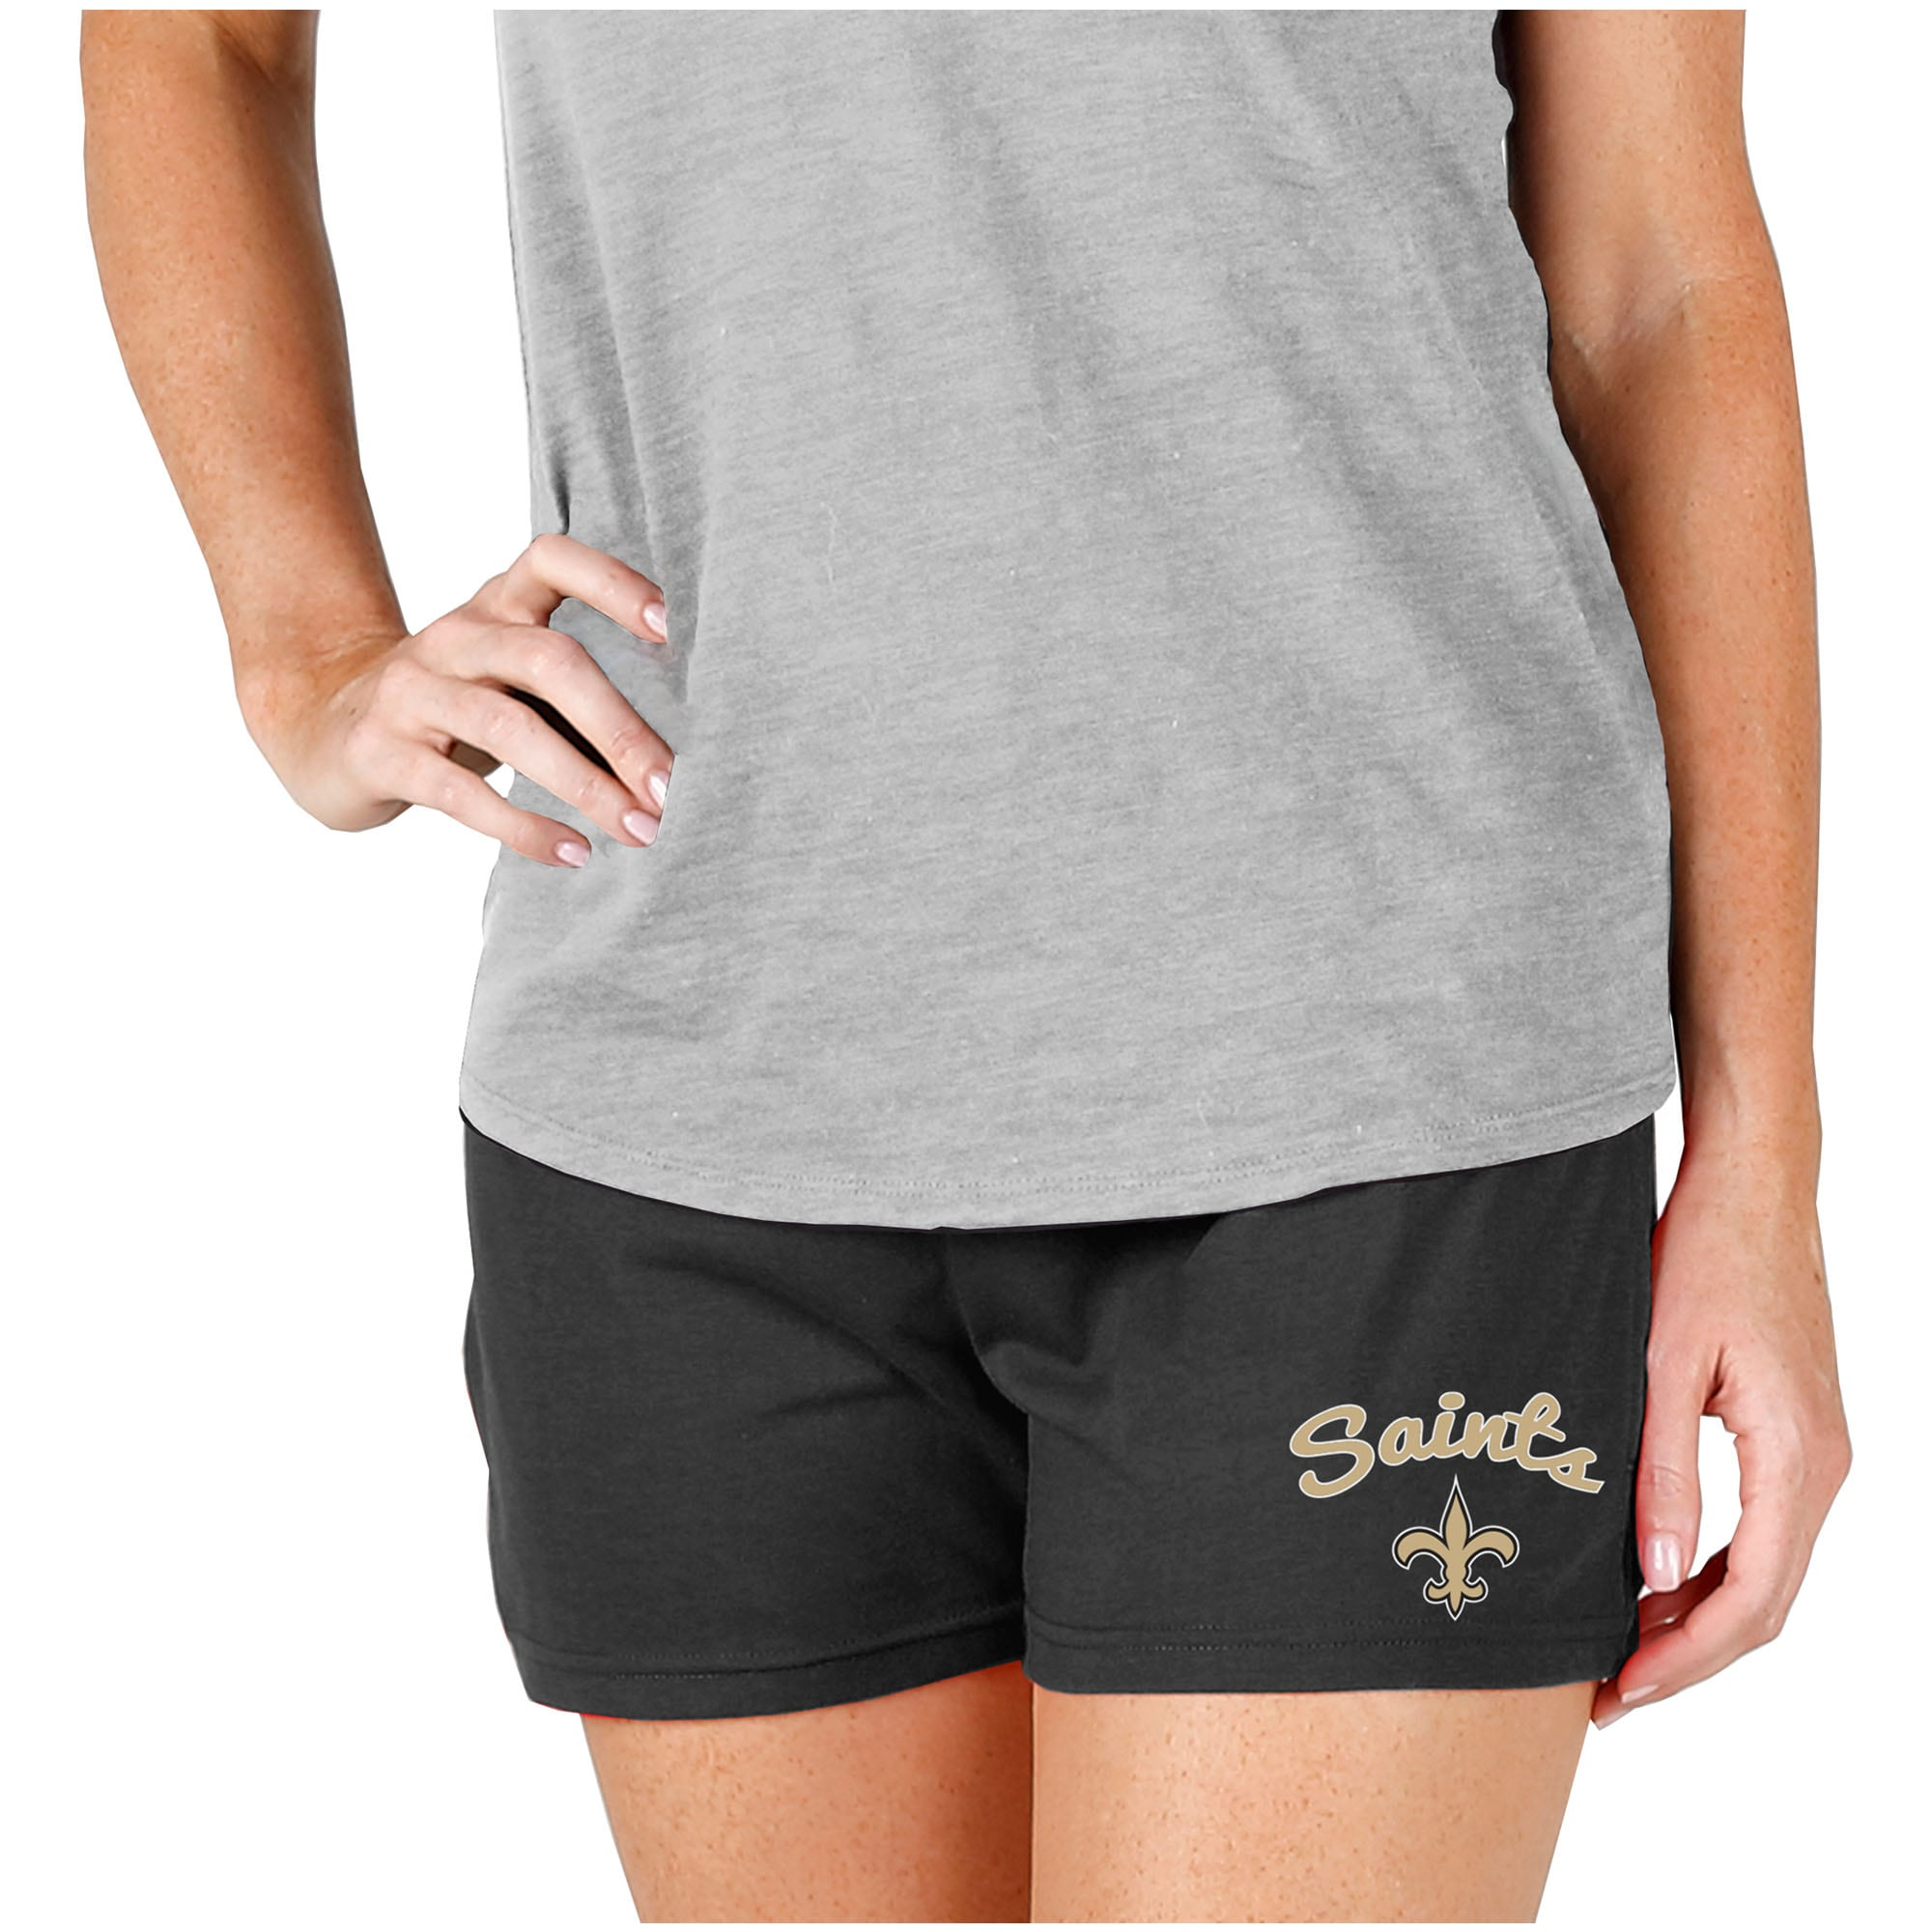 New Orleans Saints Concepts Sport Women's Knit Shorts - Charcoal